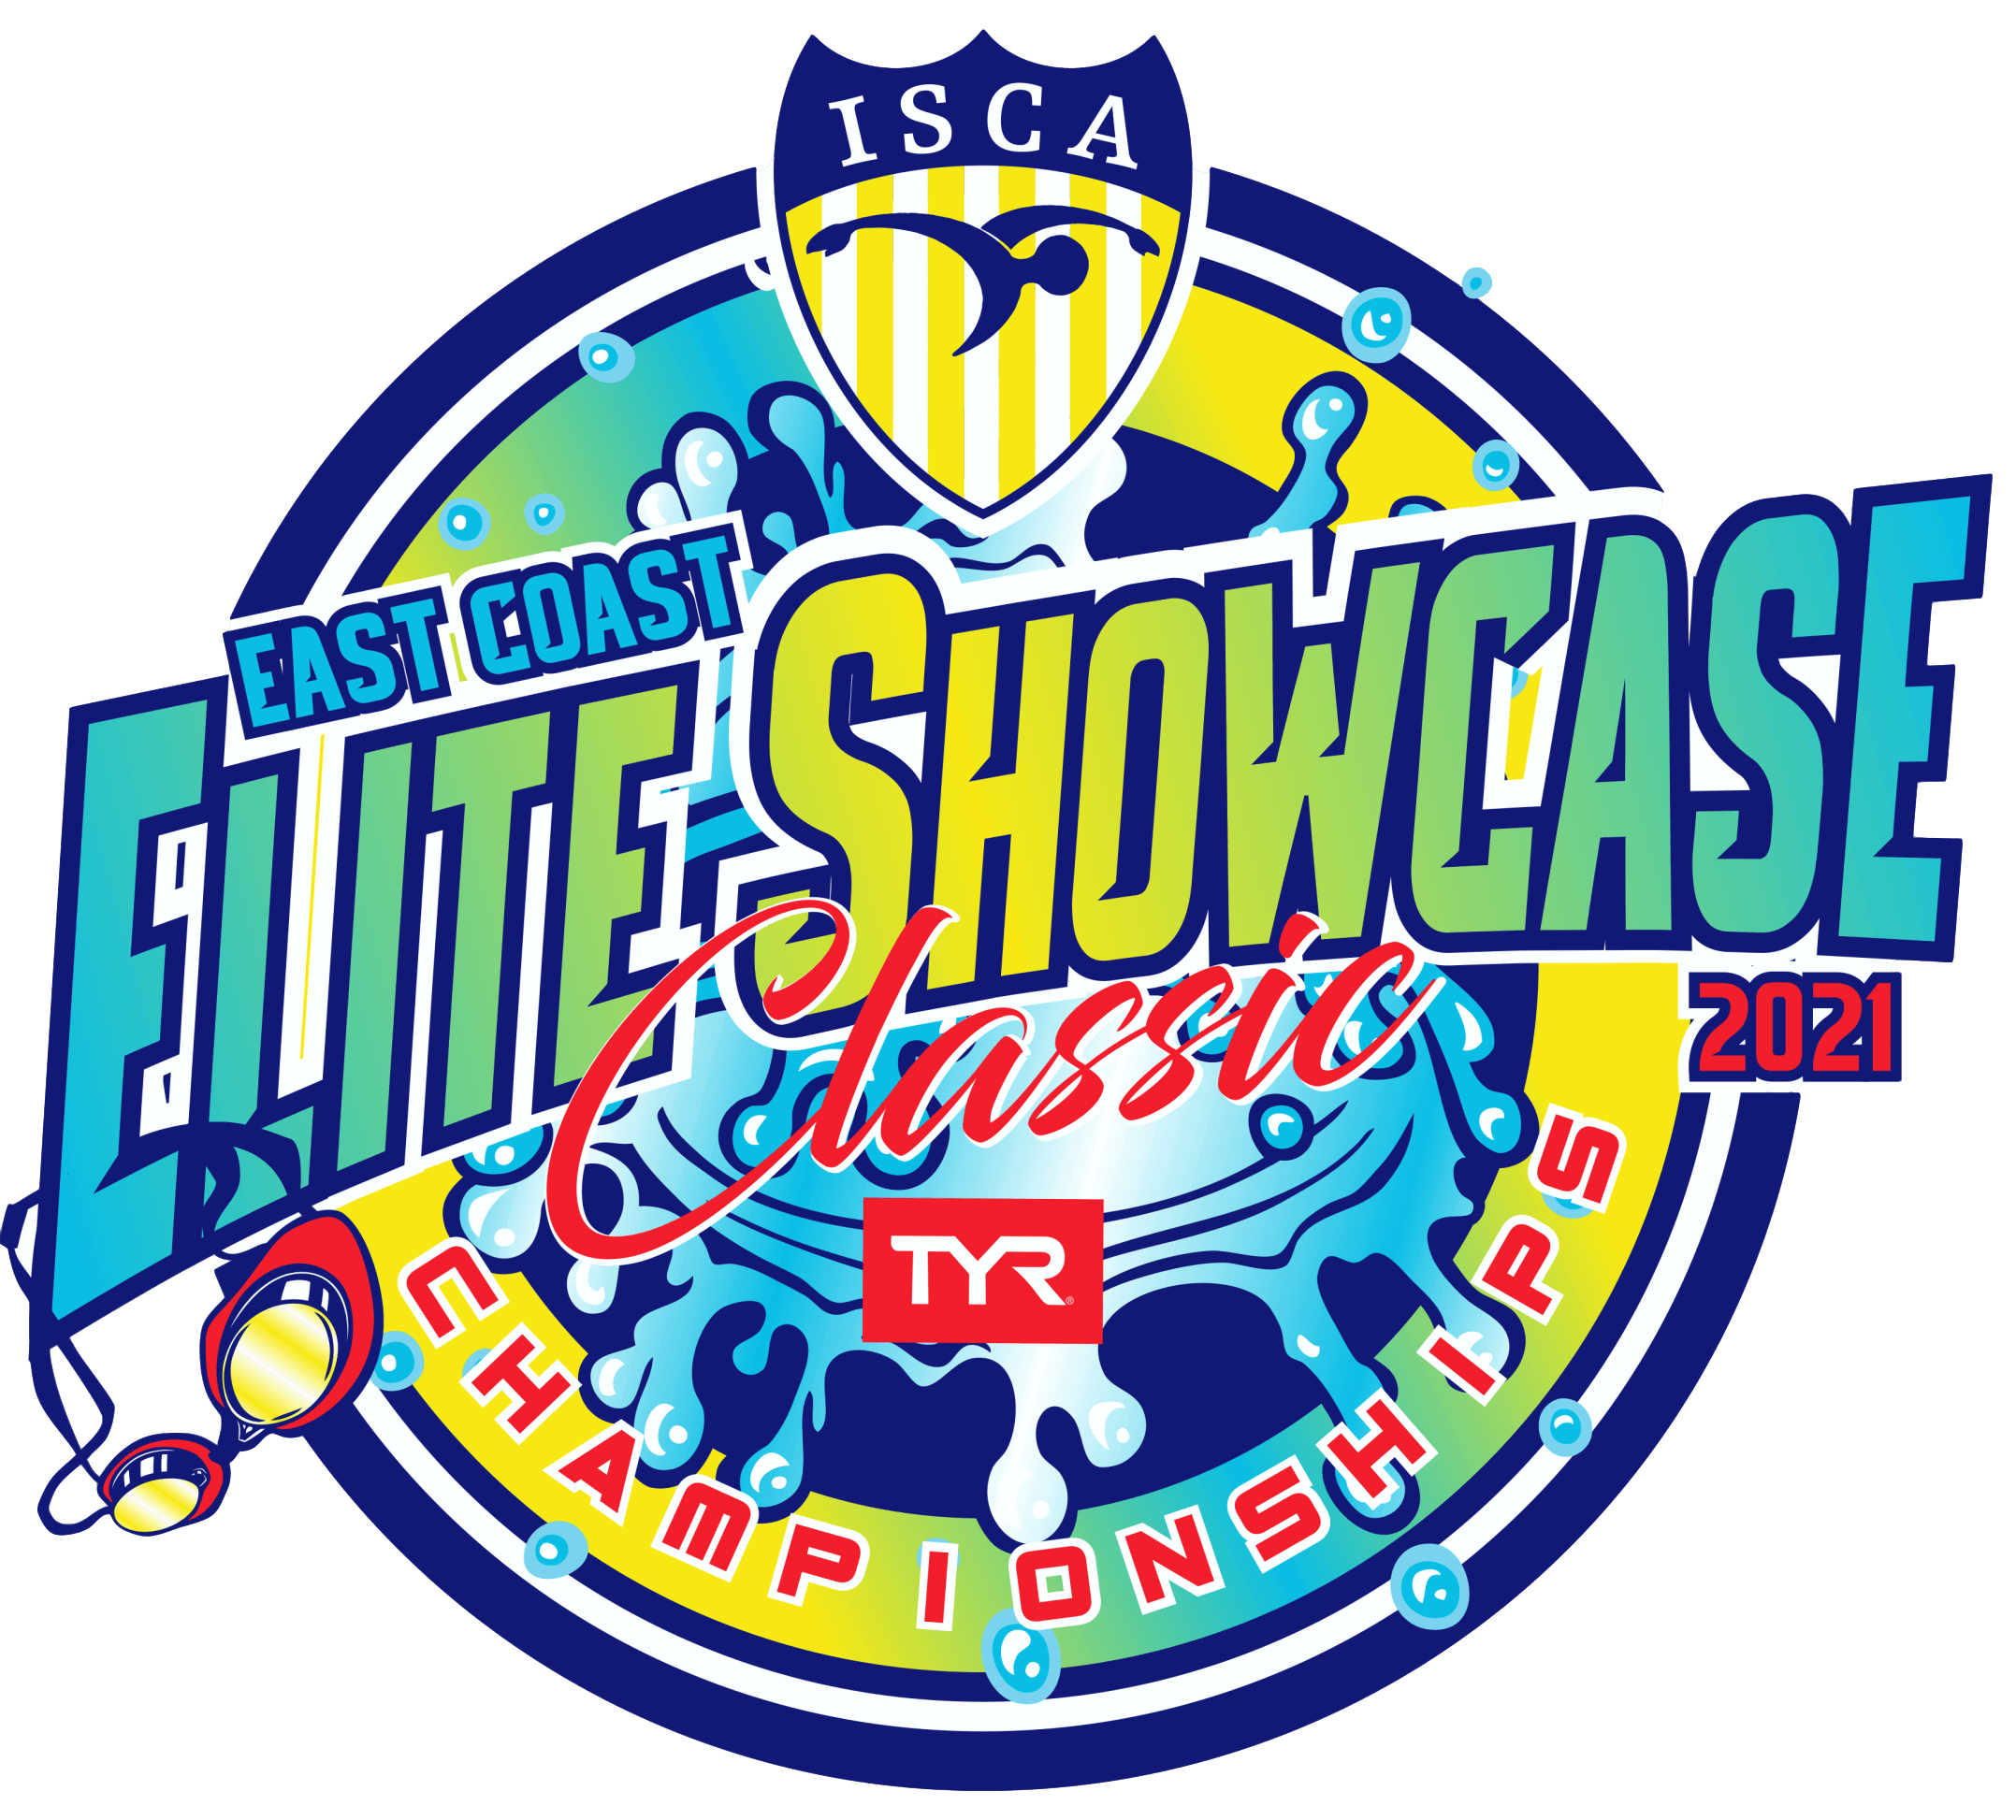 ISCA East Coast Elite Showcase Classic - 2021 - logo